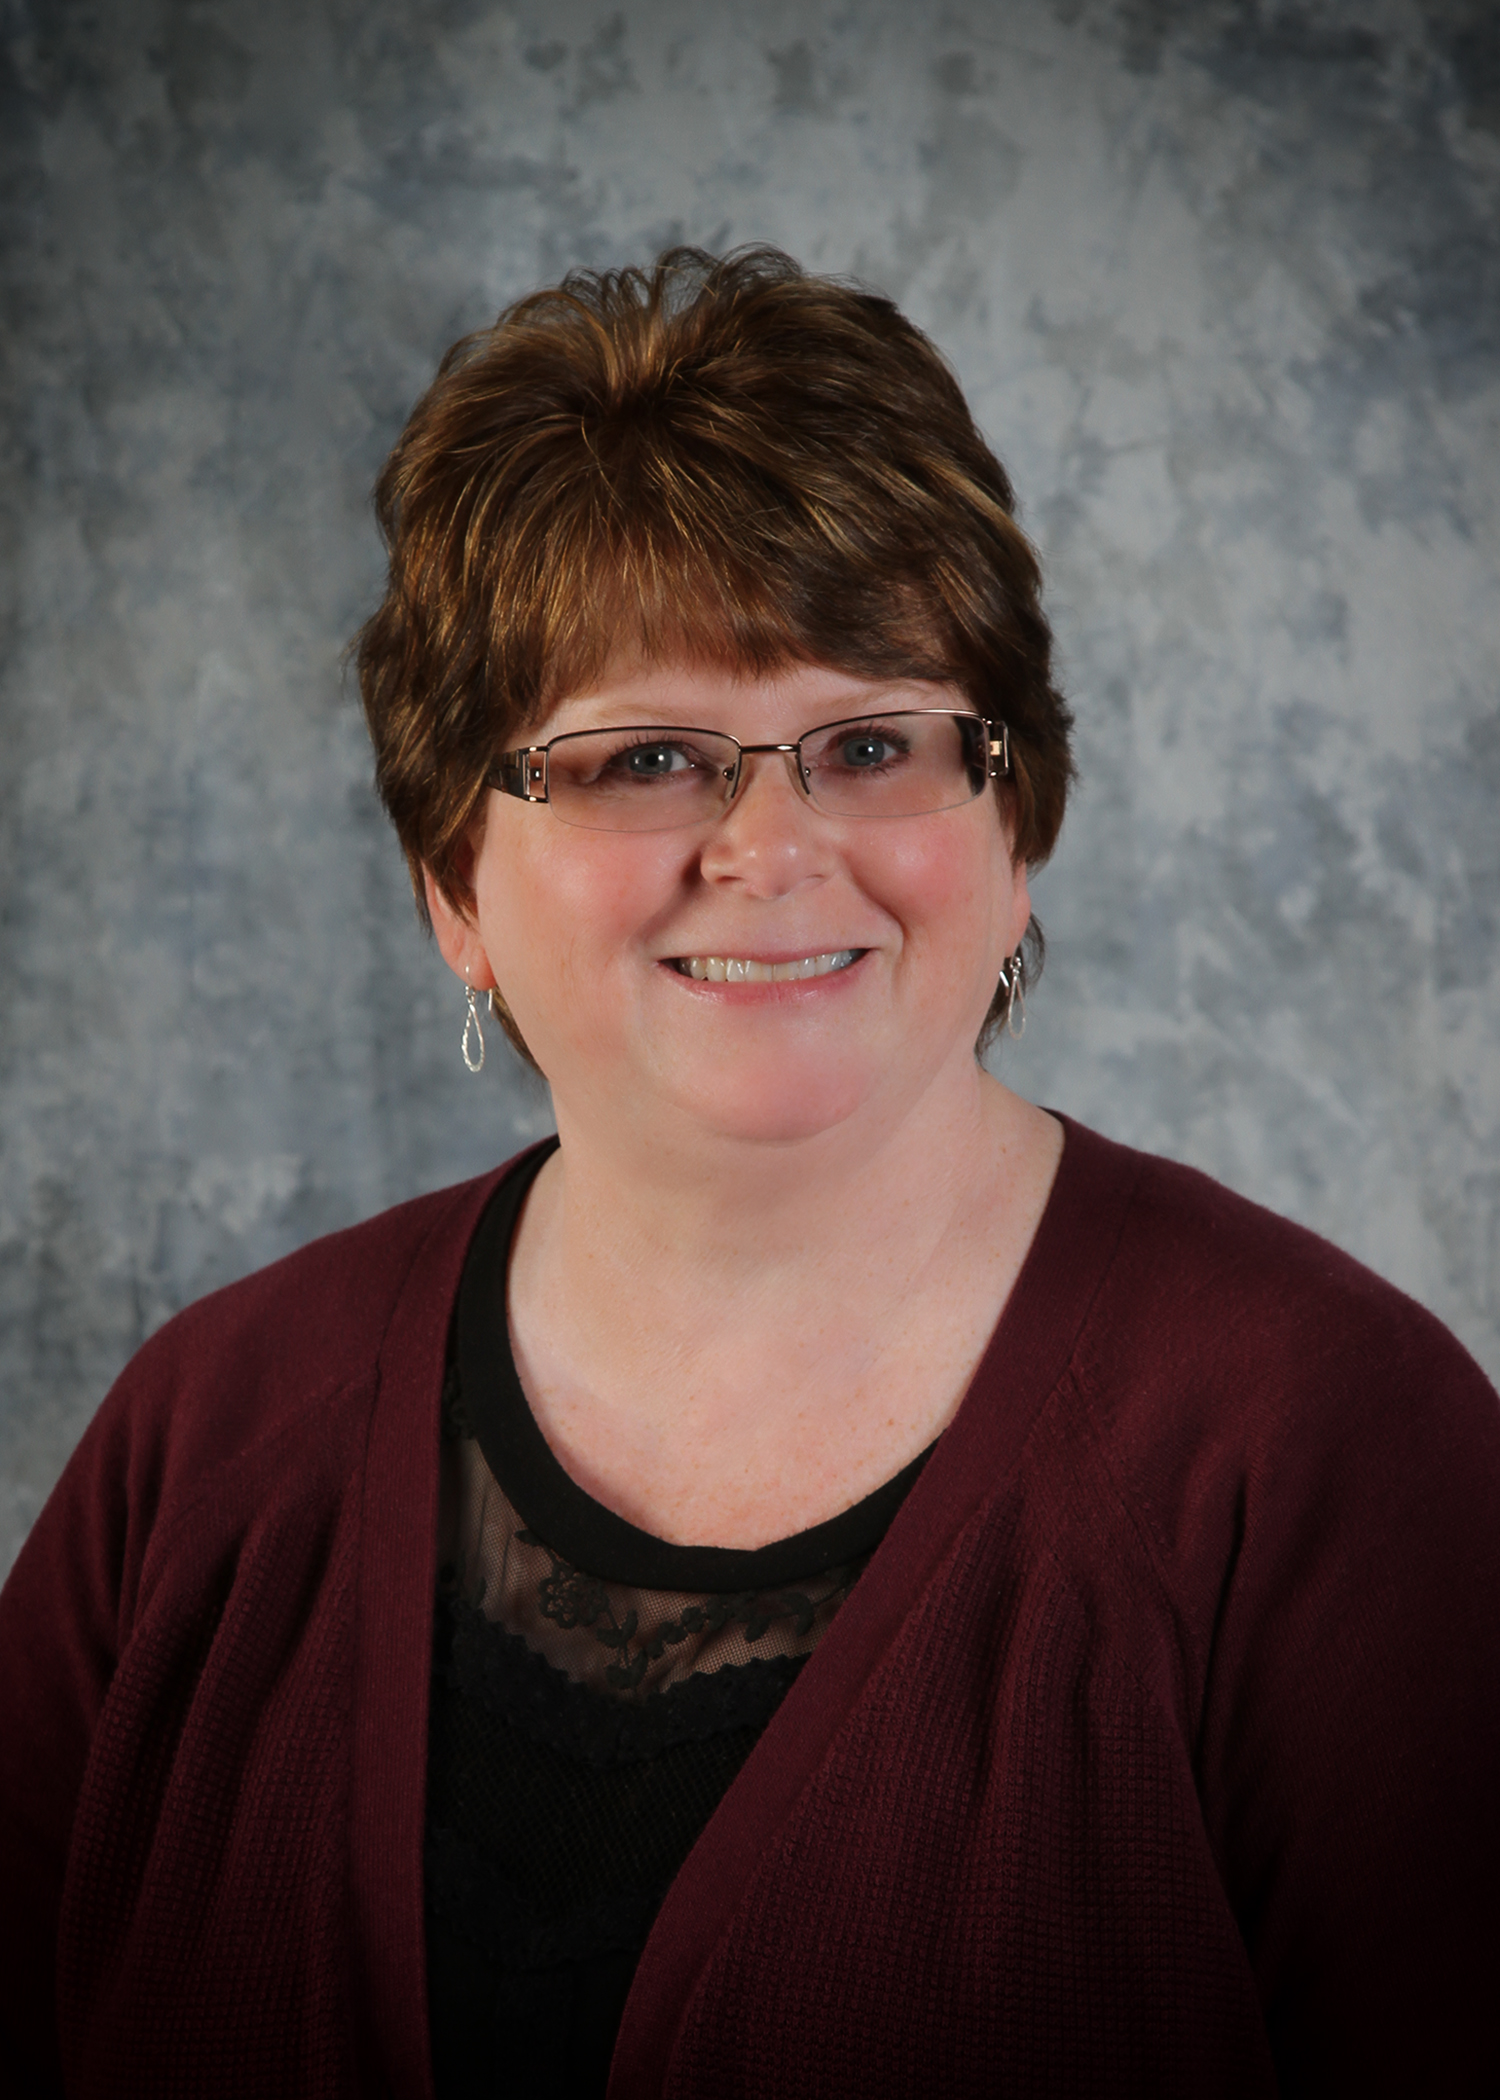 Tracy Nelson - At Large Representative  (715)267-6205  council03@greenwoodwi.com  First Elected: 2014  Current Term: 2018 - 2020